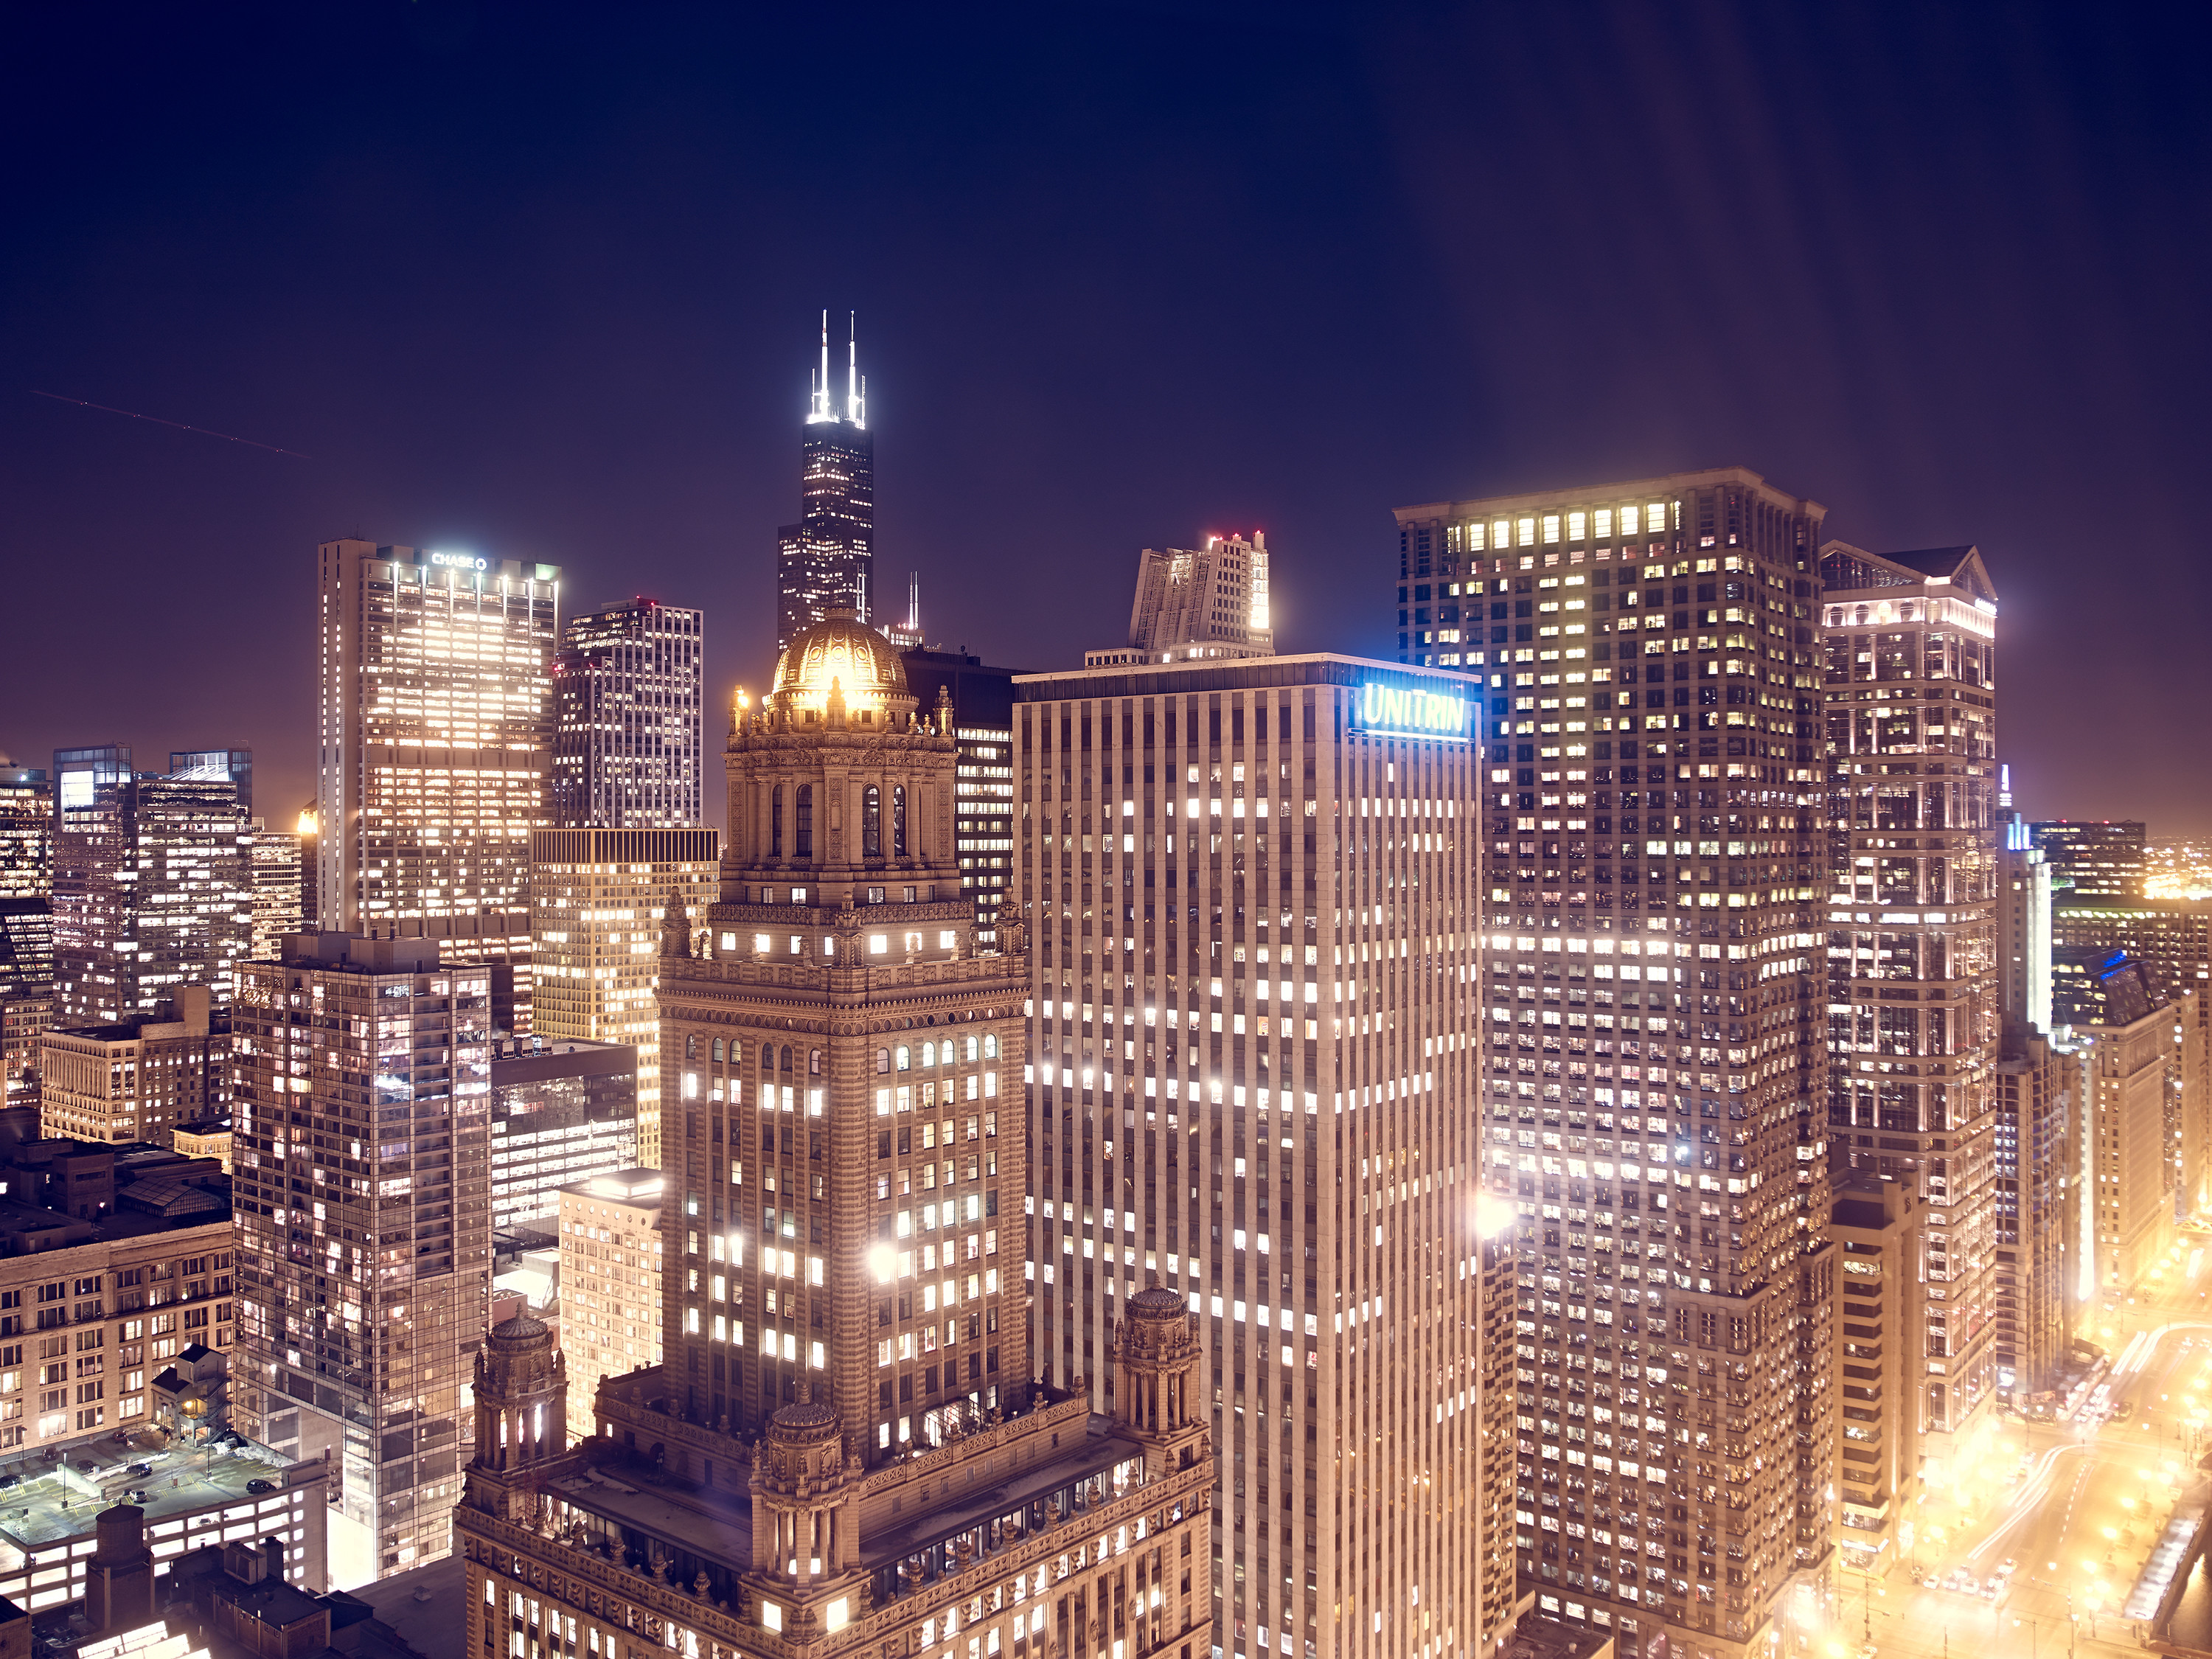 Nightscapes / Chicago Sears